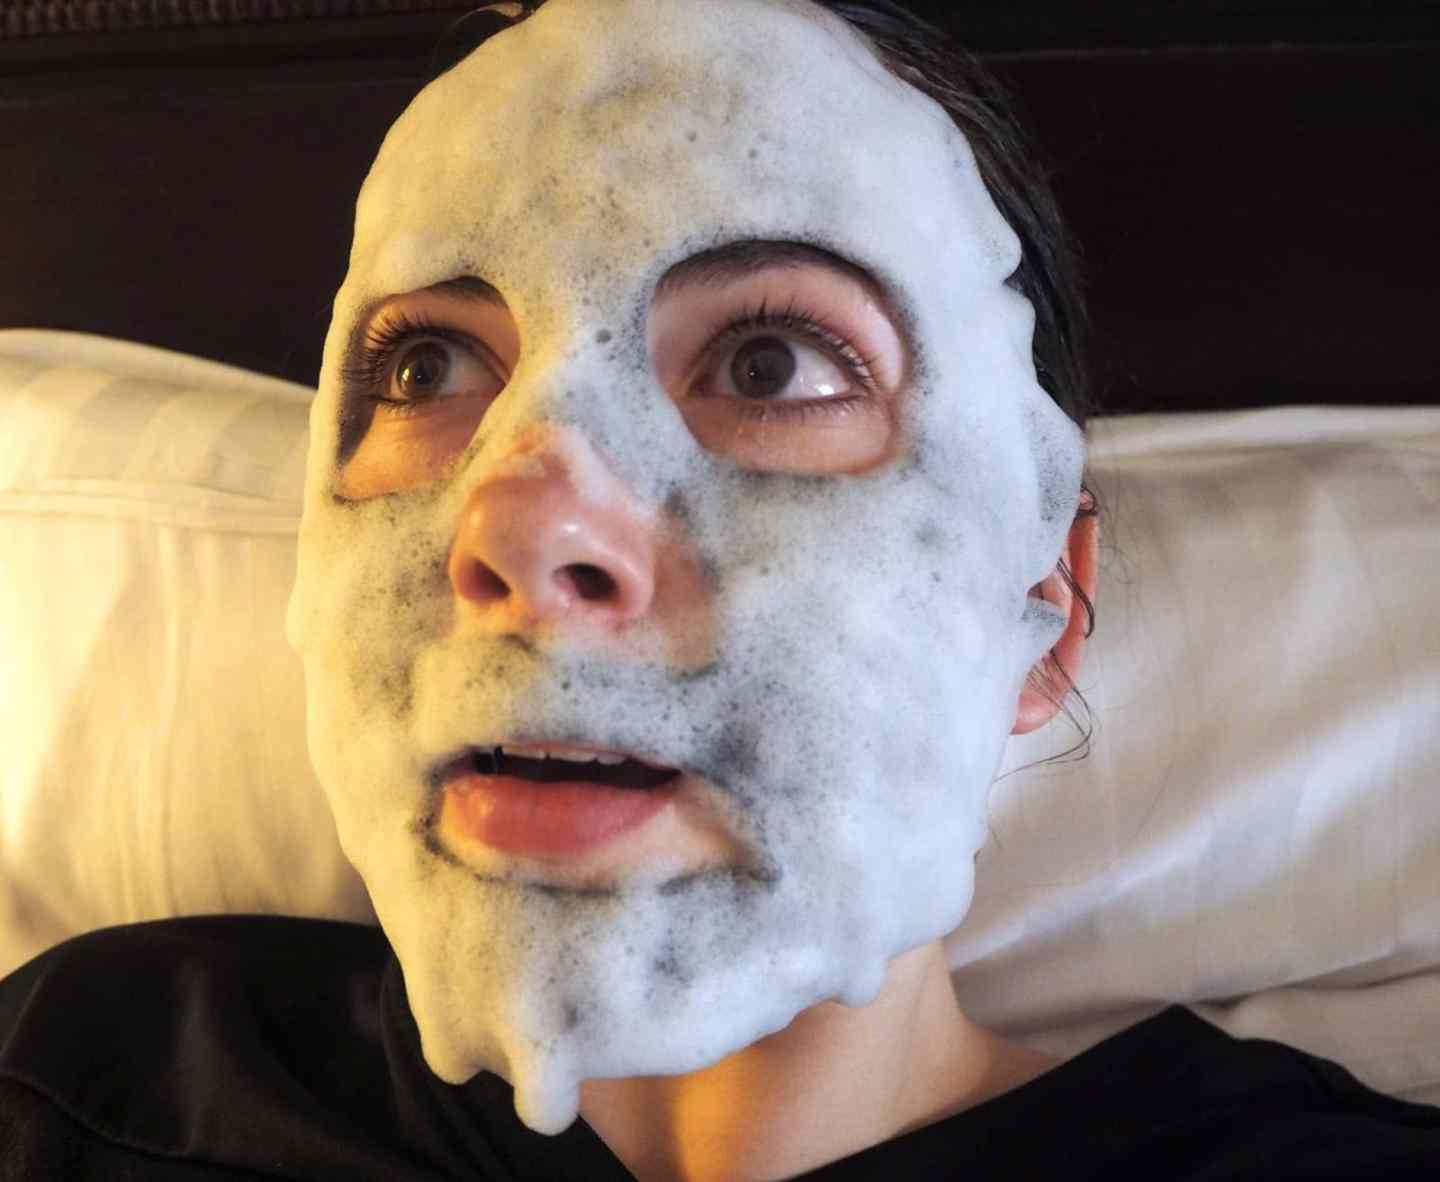 Bubble Mask on face